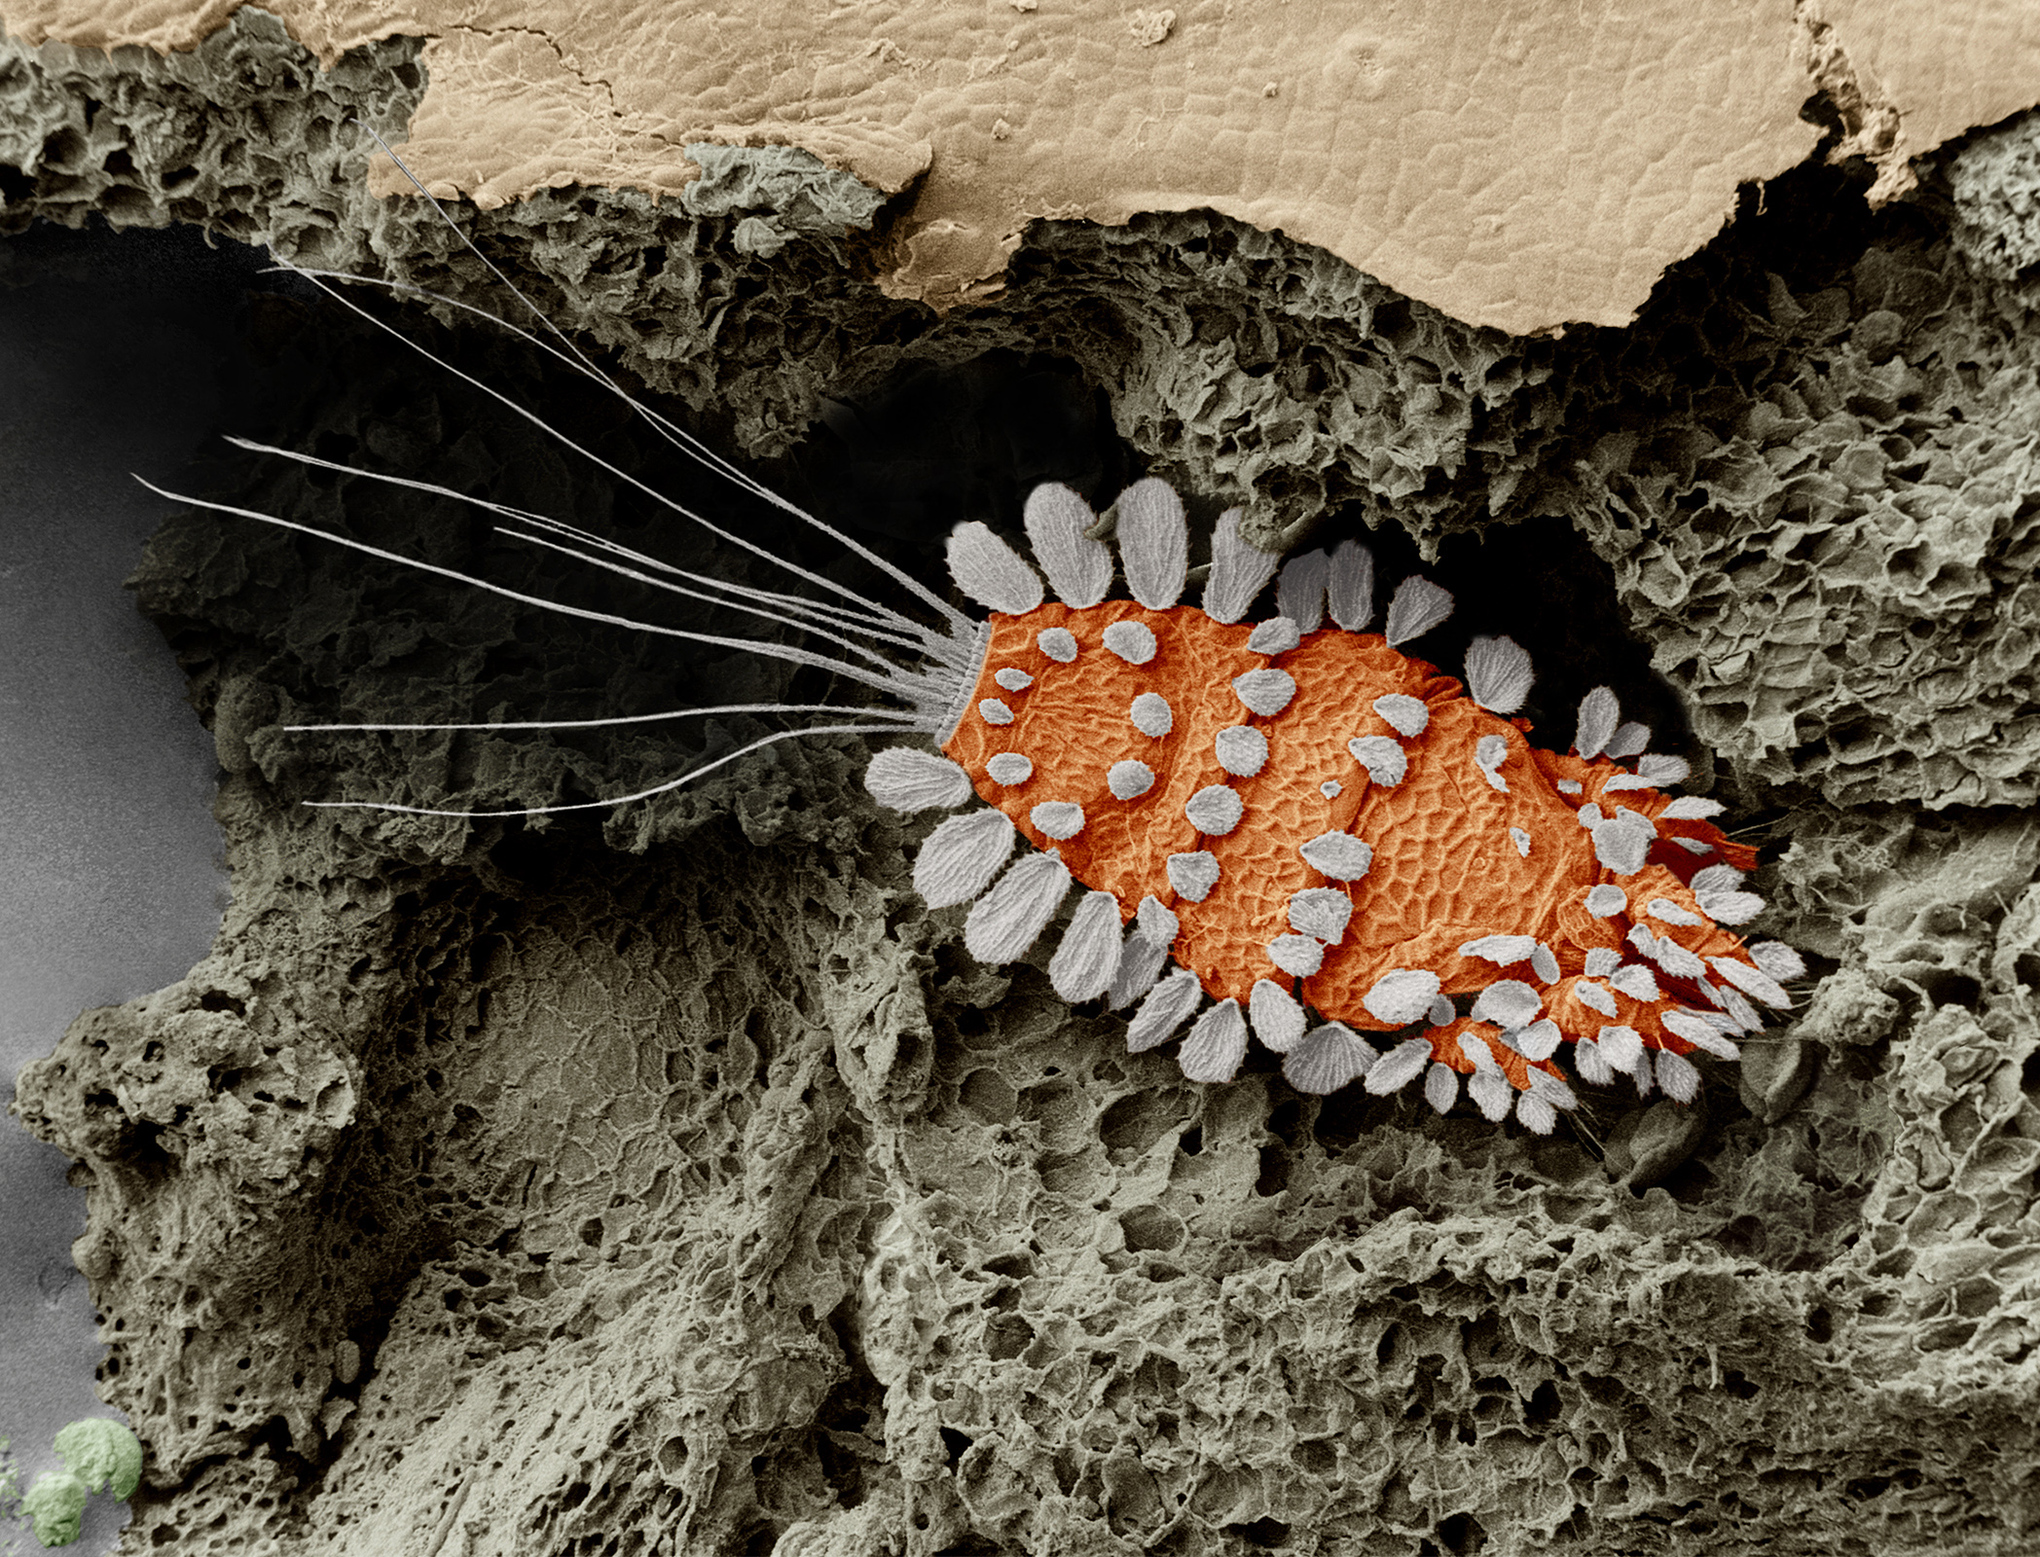 Don't freak out, but there are thousands of mites living all